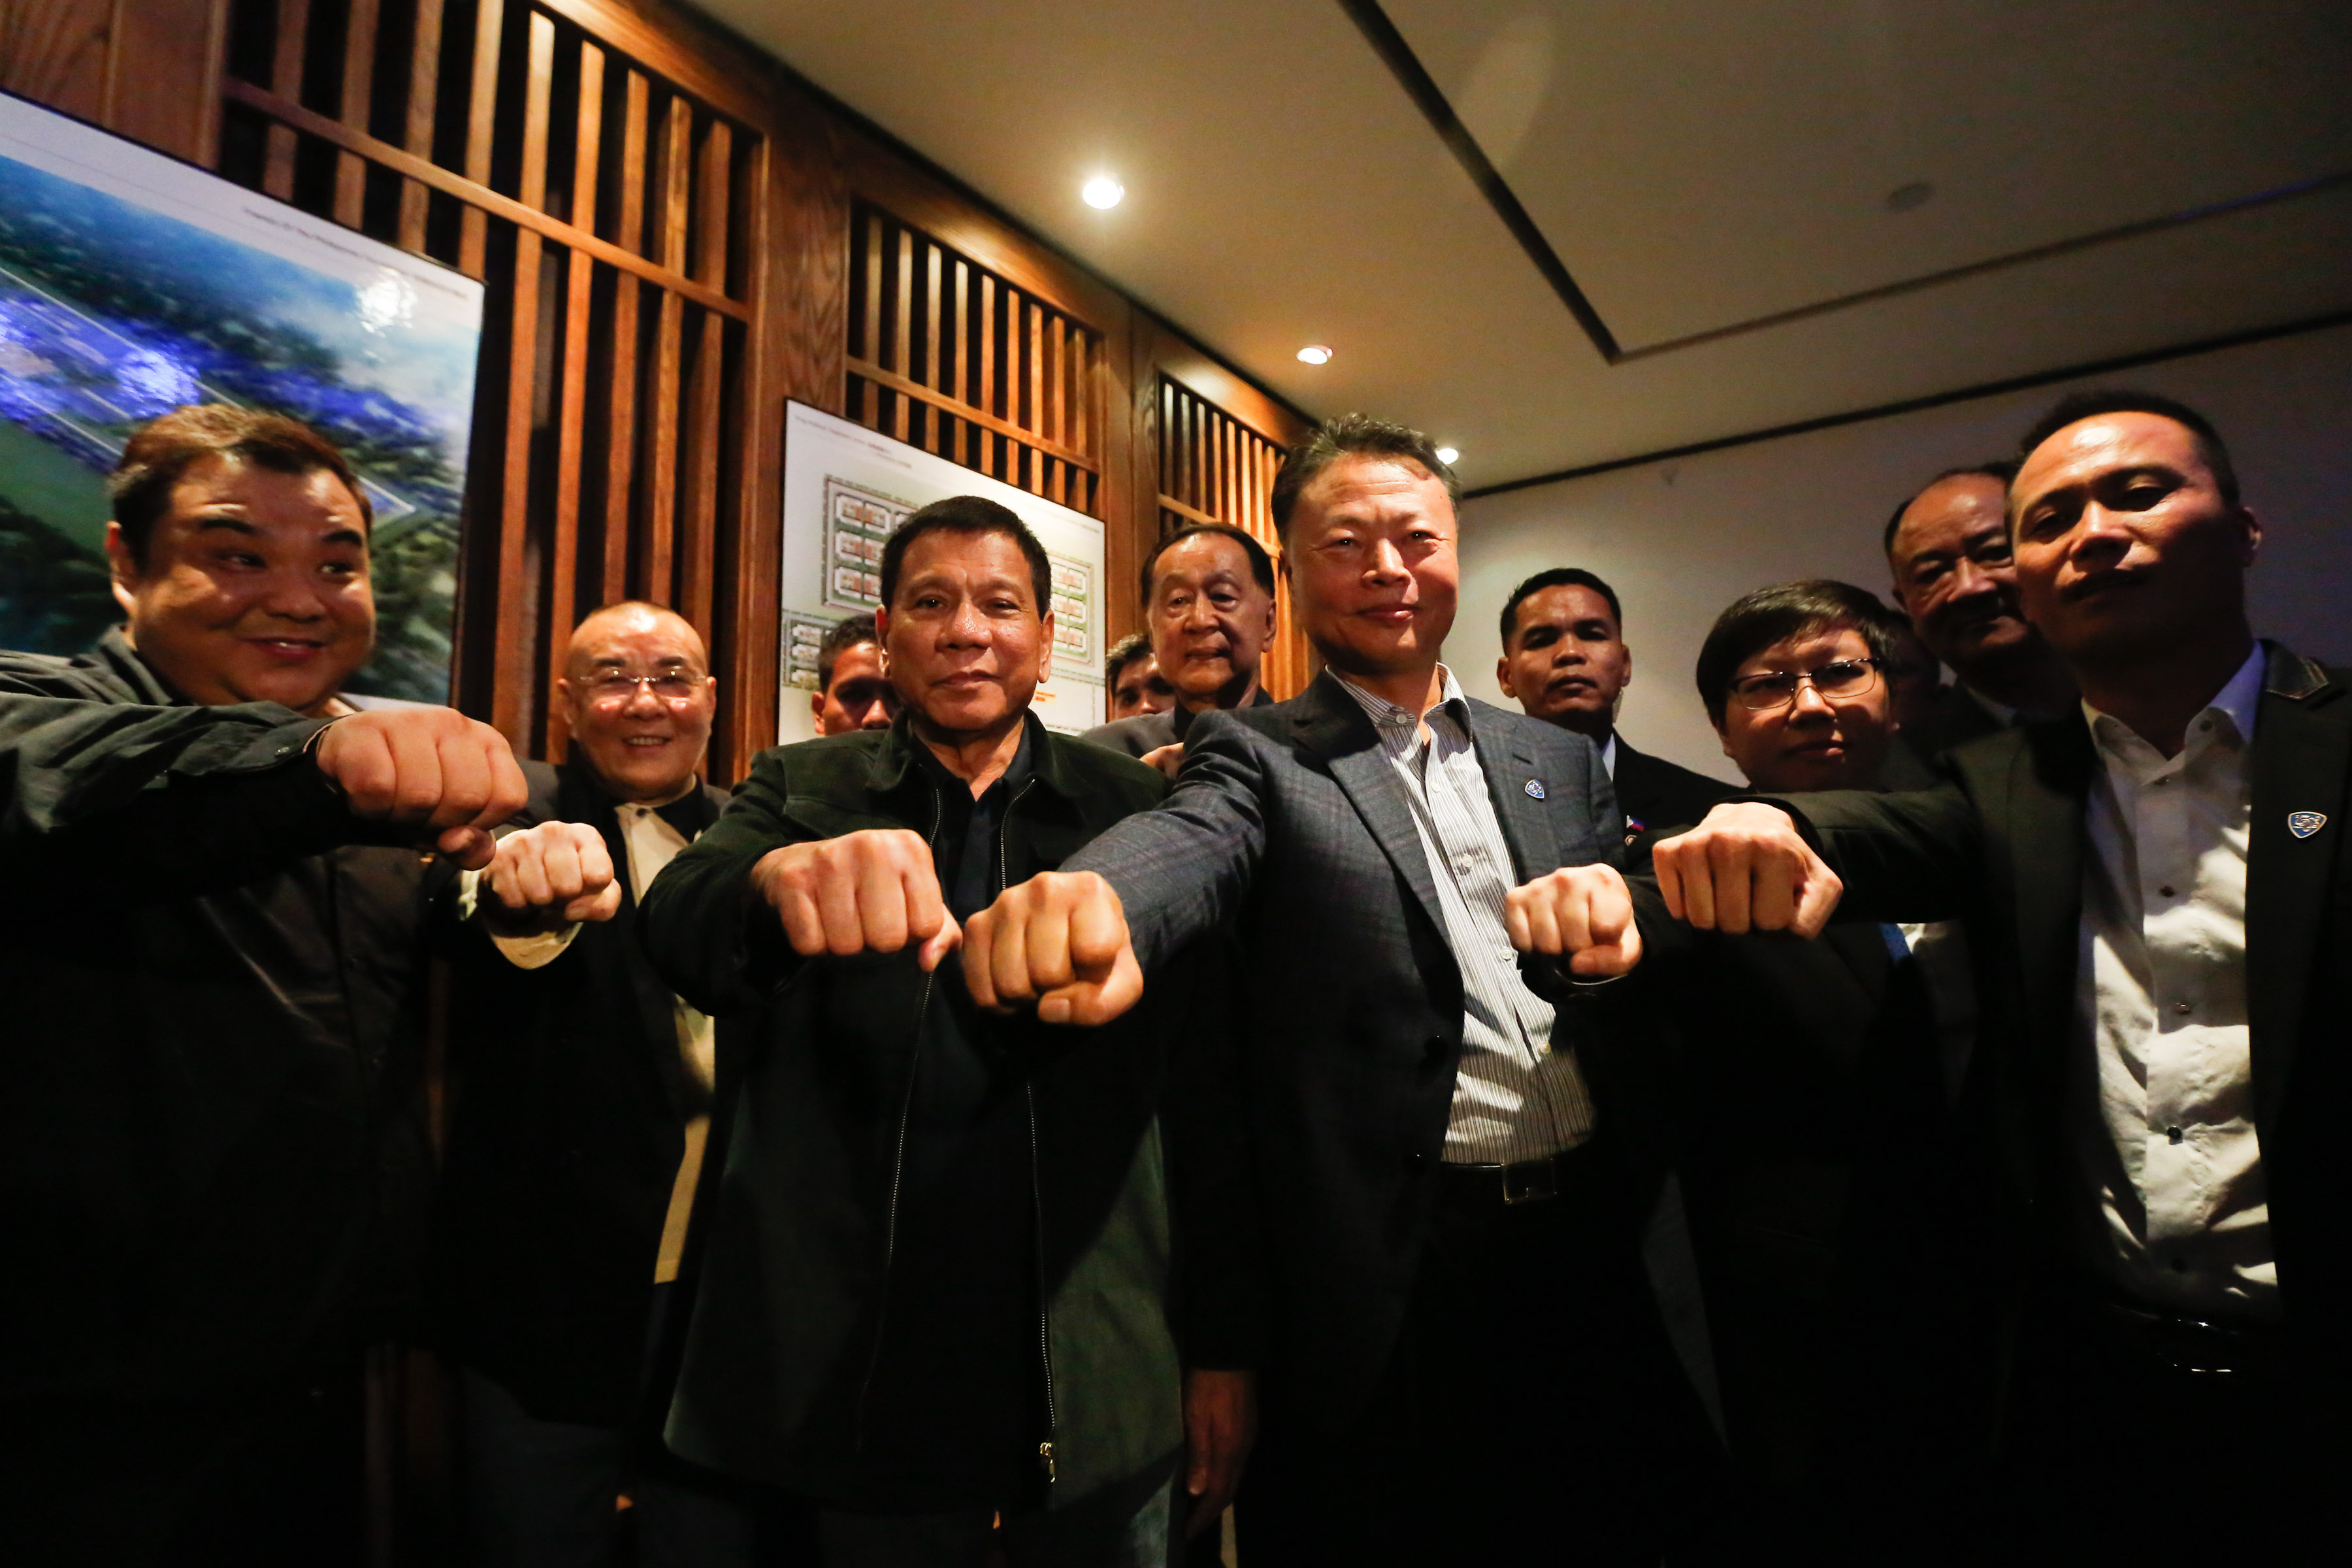 CHOW TIME. President Rodrigo Duterte, along with Chinese Ambassador to the Philippines Zhao Jianhua and officials of the Friends of the Philippines Foundation, pose for a group photo at Dadong Roast Duck Restaurant in Beijing on October 19, 2016. Photo by Toto Lozano/Presidential Photo